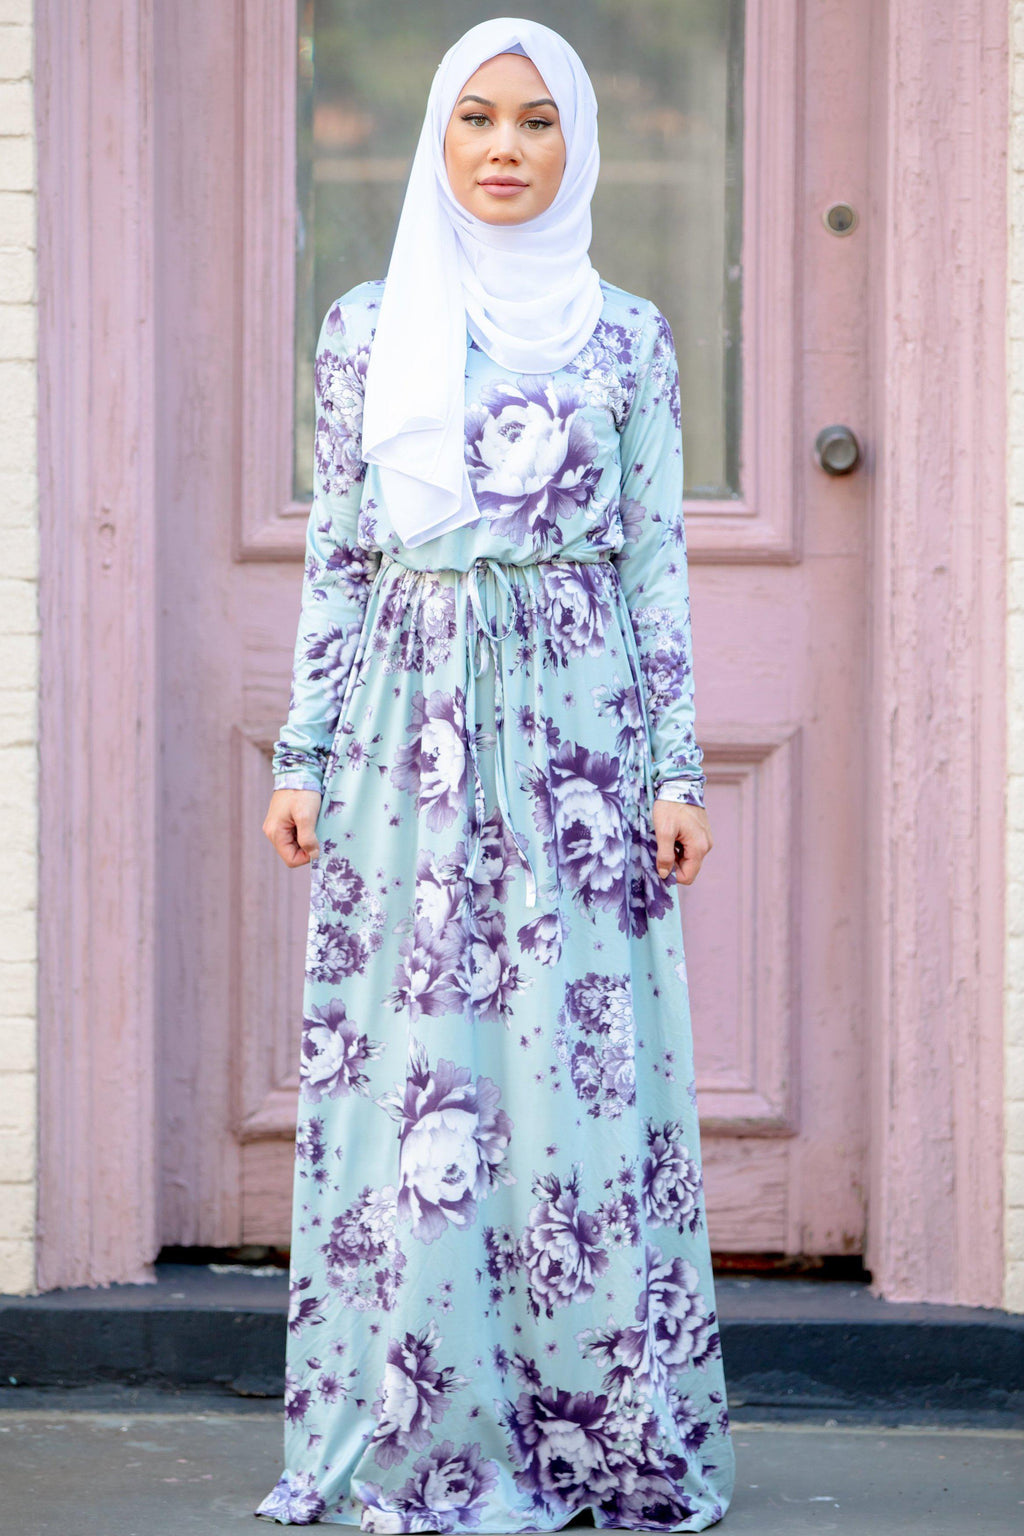 60d2922e7fc3 Mint Floral Drawstring Long Sleeve Maxi Dress-CLEARANCE - Abaya, Hijabs,  Jilbabs,